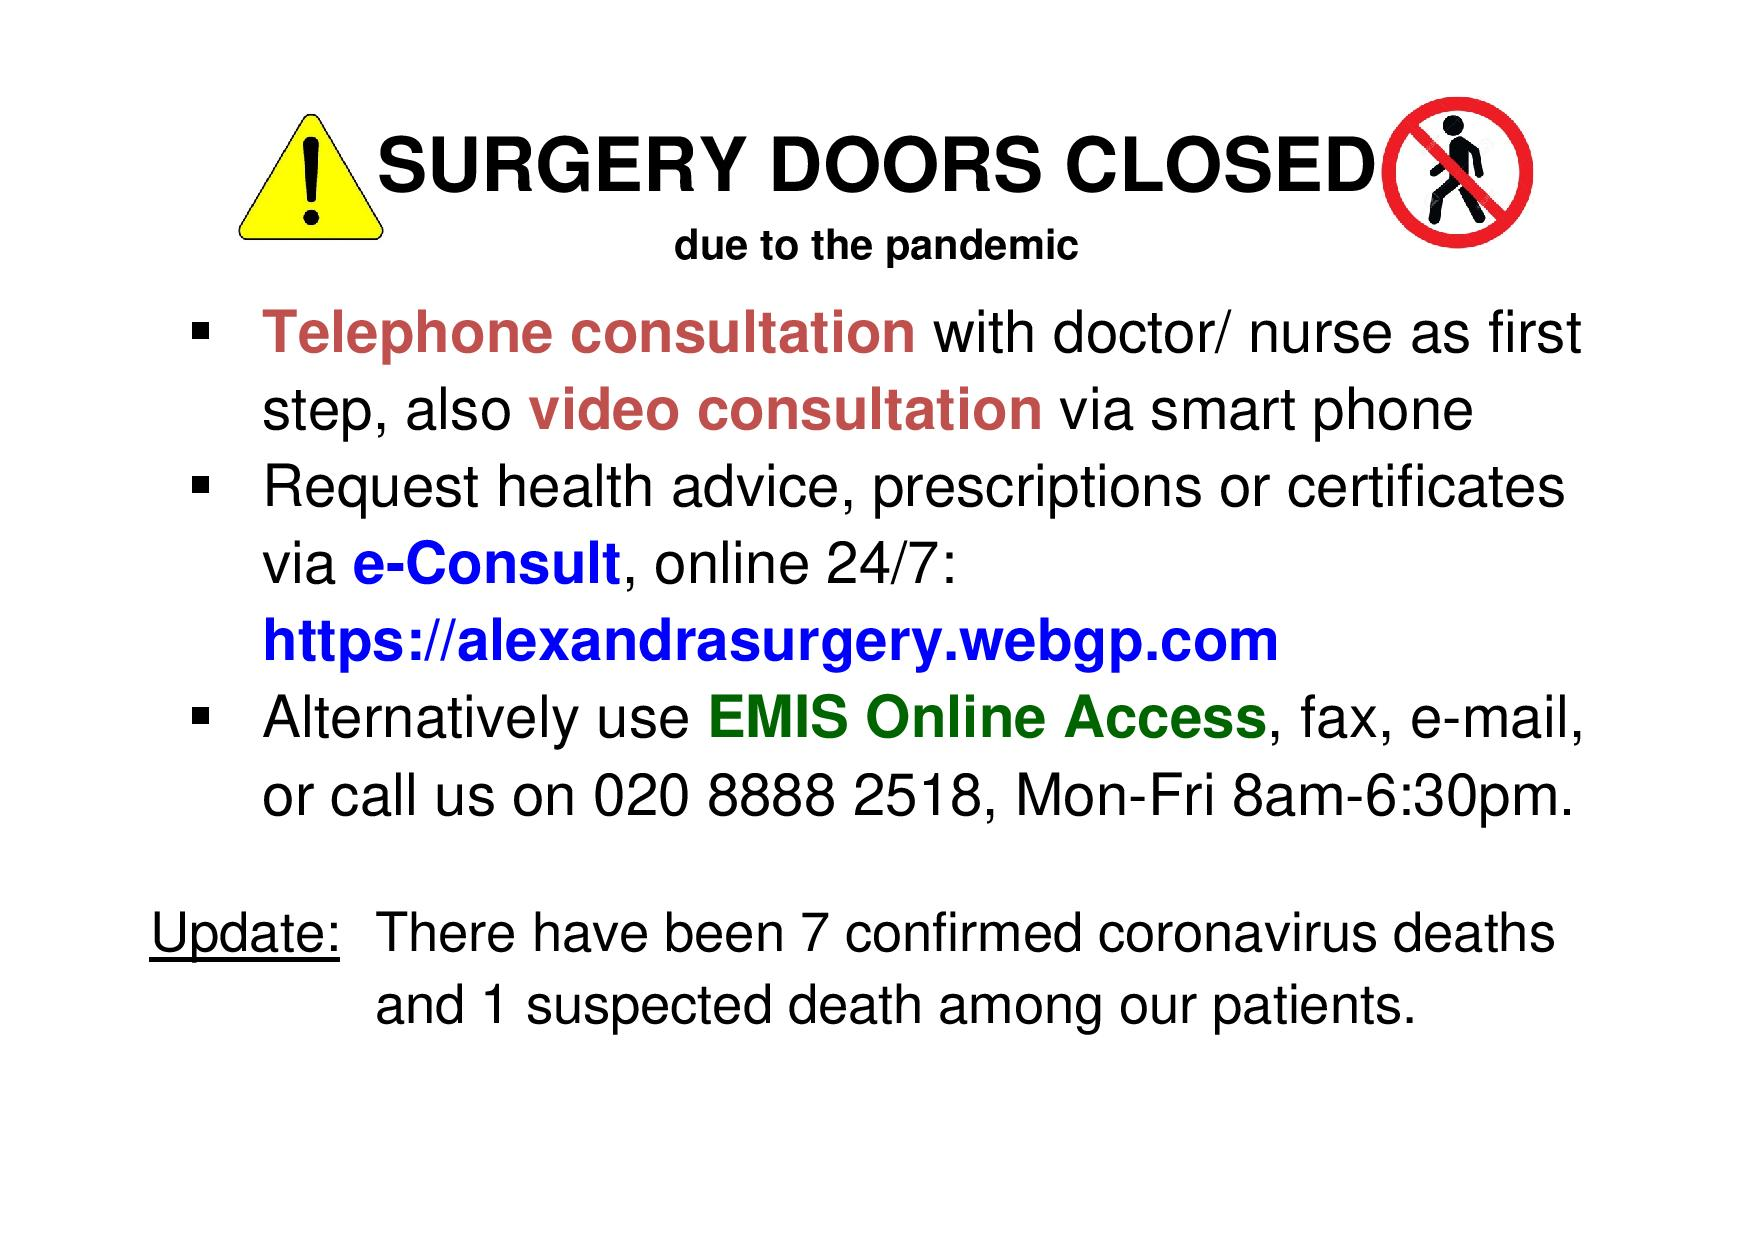 Surgery doors closed poster2